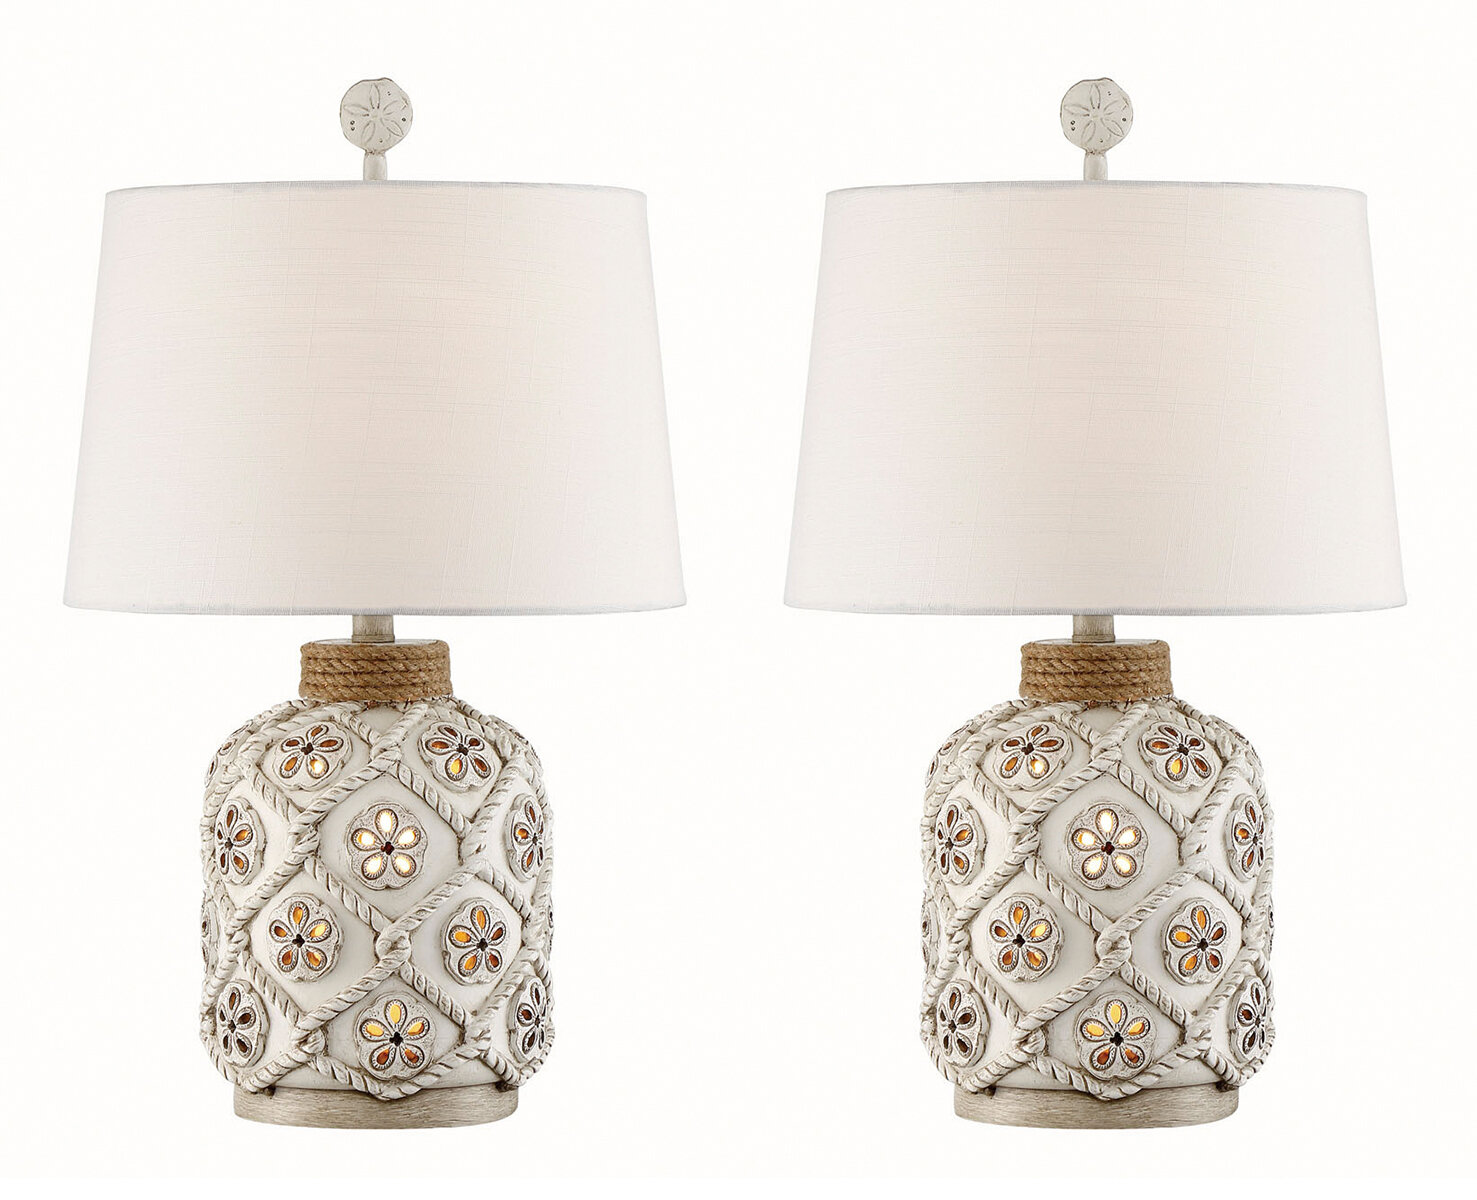 Resin Rosecliff Heights Table Lamps You Ll Love In 2021 Wayfair